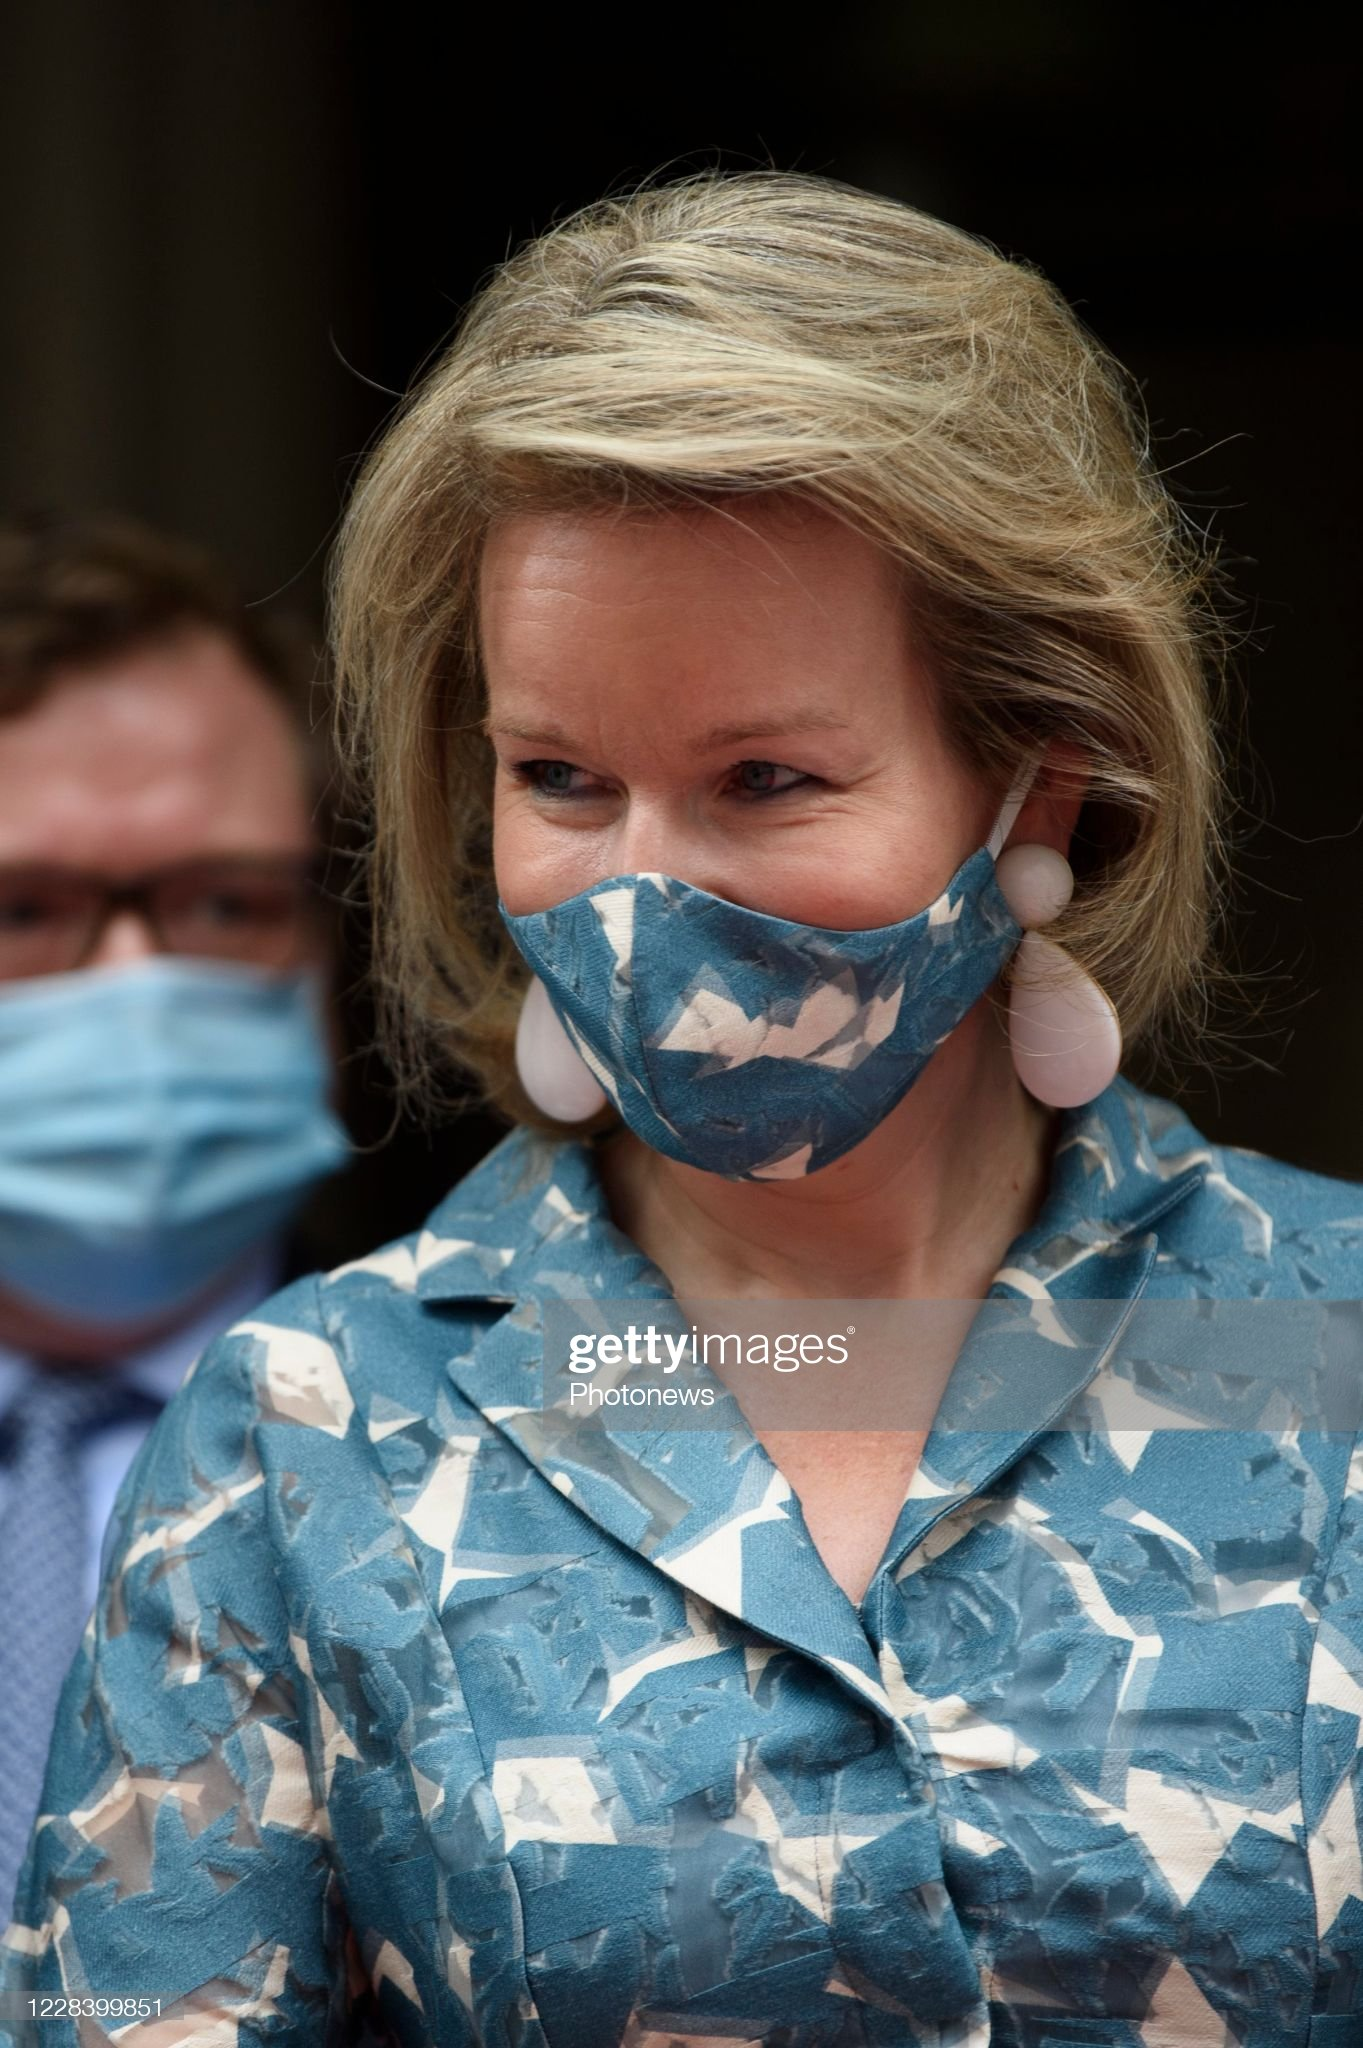 opening-of-the-new-wikifin-lab-in-the-presence-of-the-queen-mathilde-picture-id1228399851